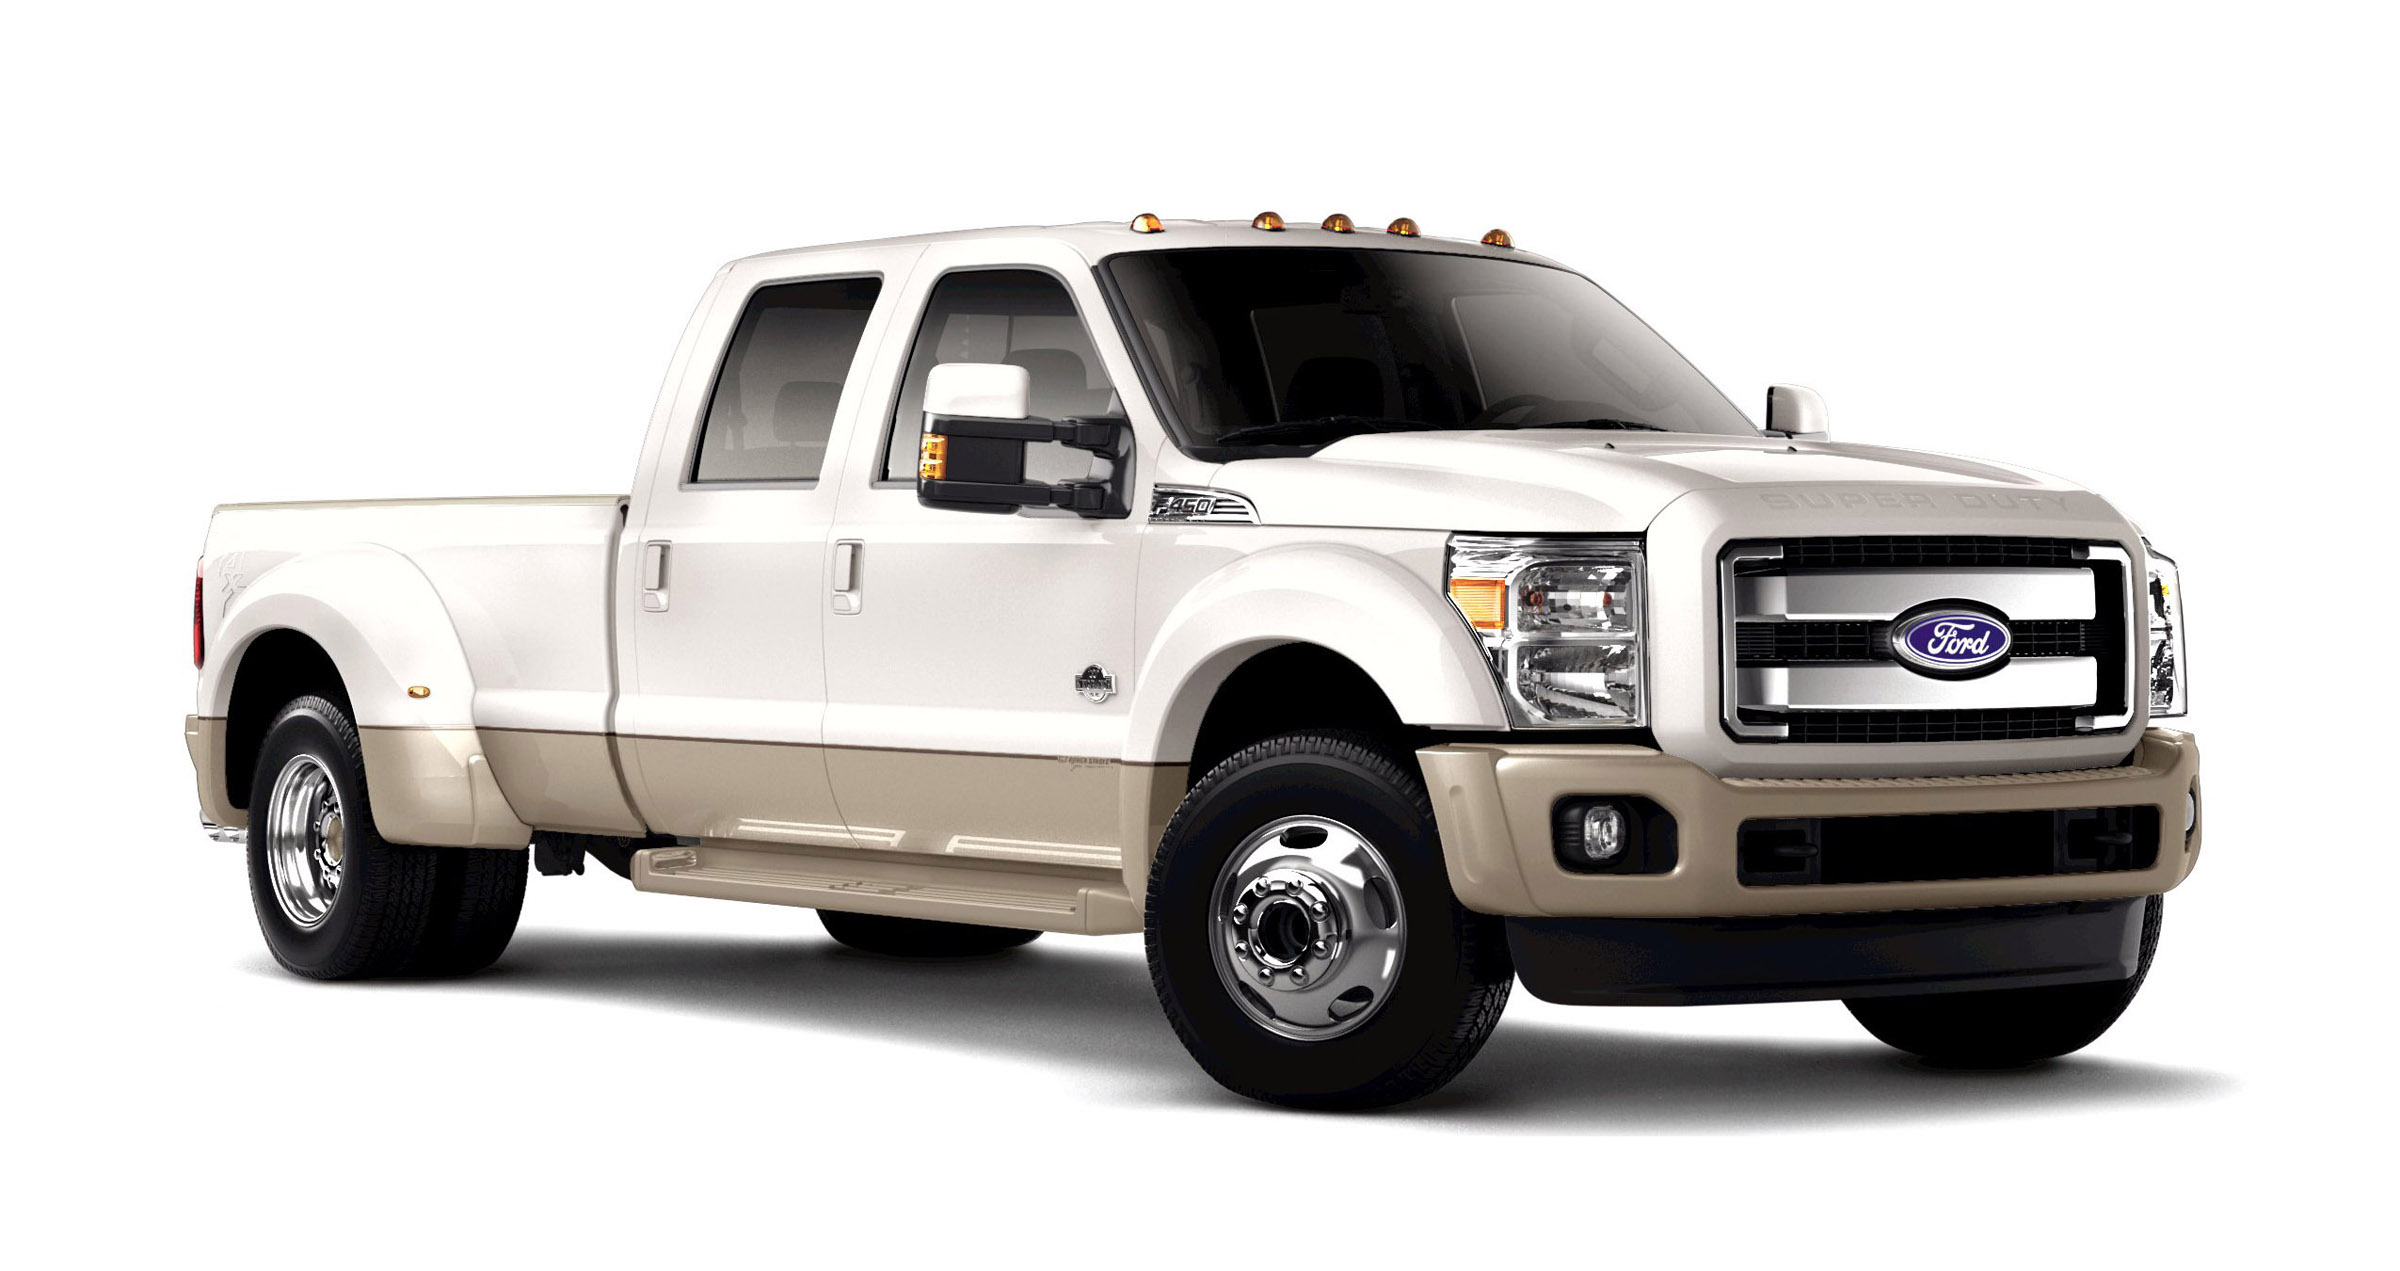 2003 ford f450 fuel economy prevnext better fuel economy. Black Bedroom Furniture Sets. Home Design Ideas